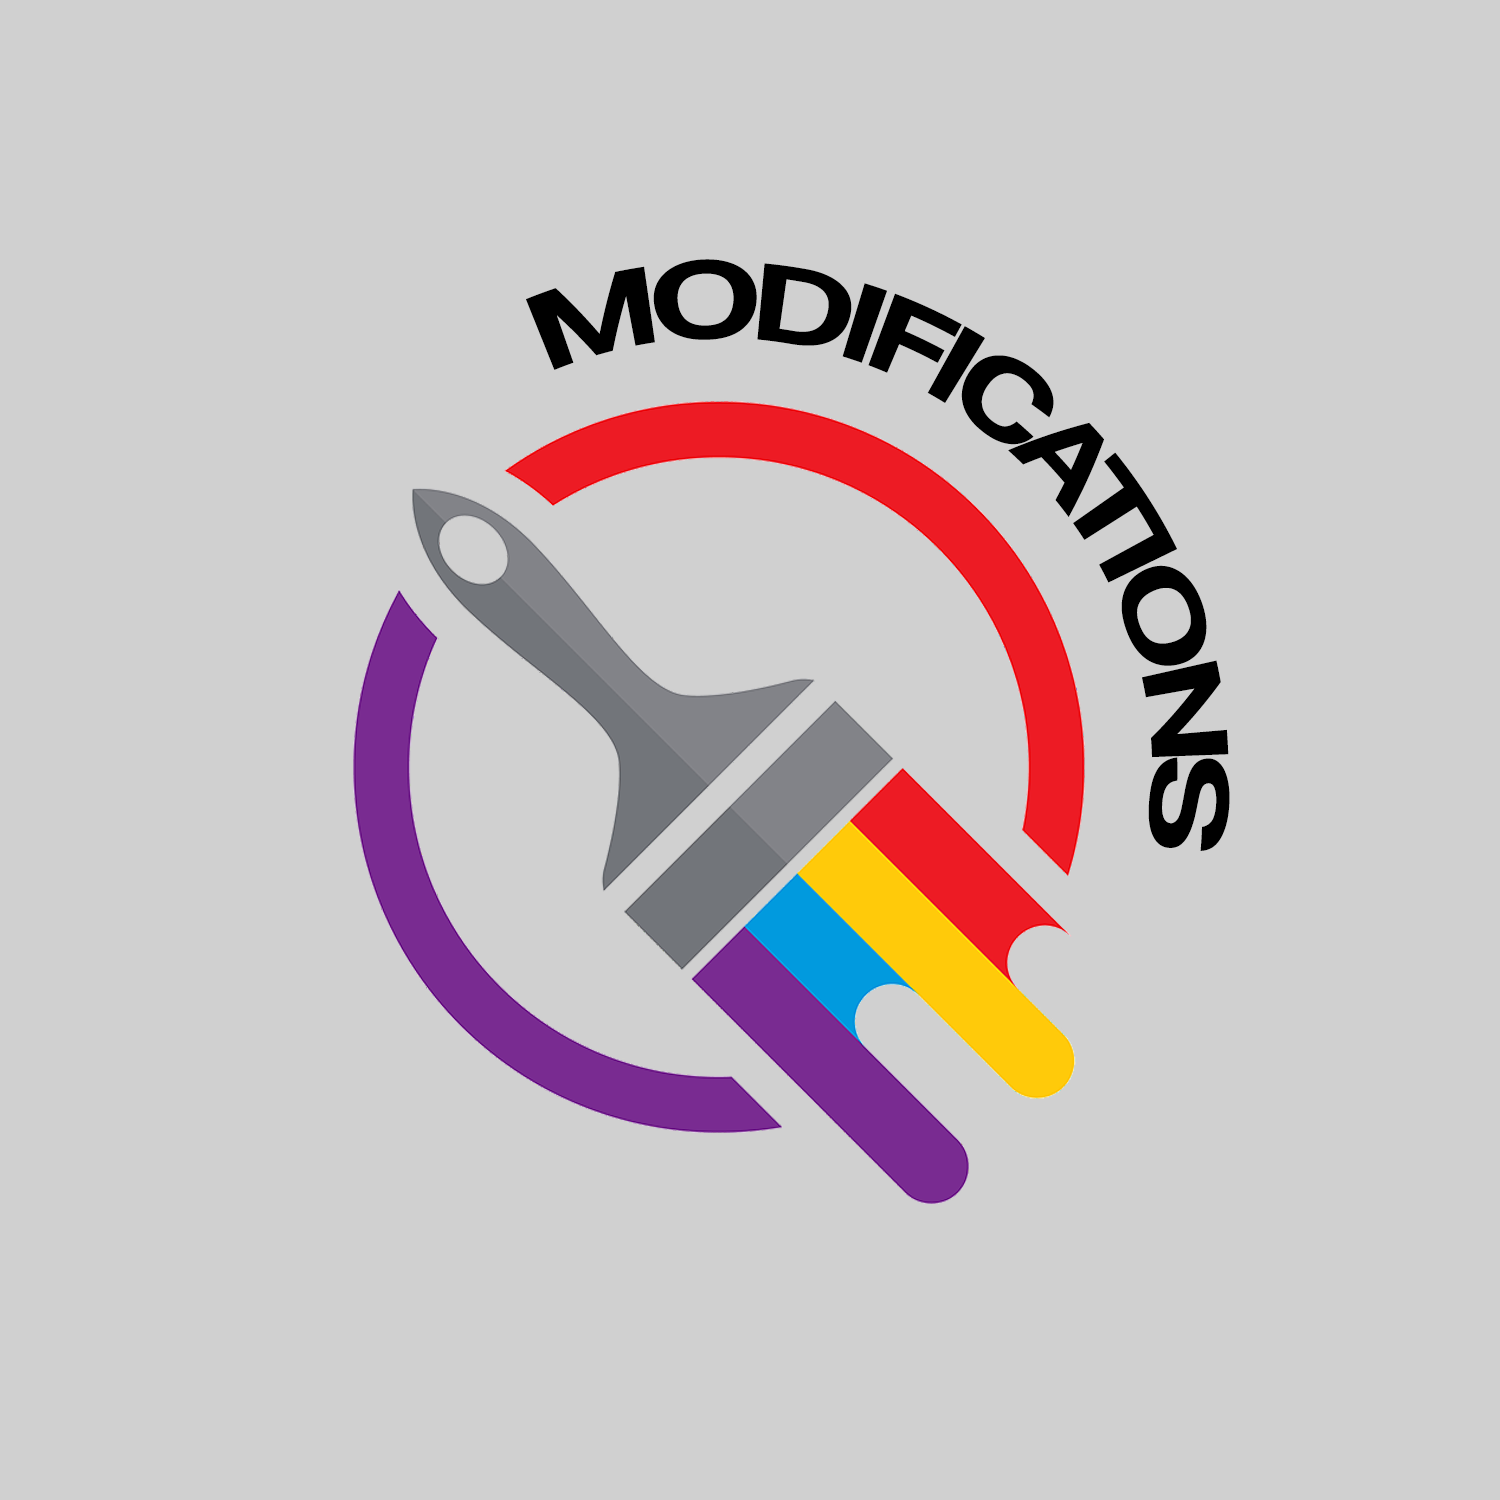 Modifications n°1 - Ollow